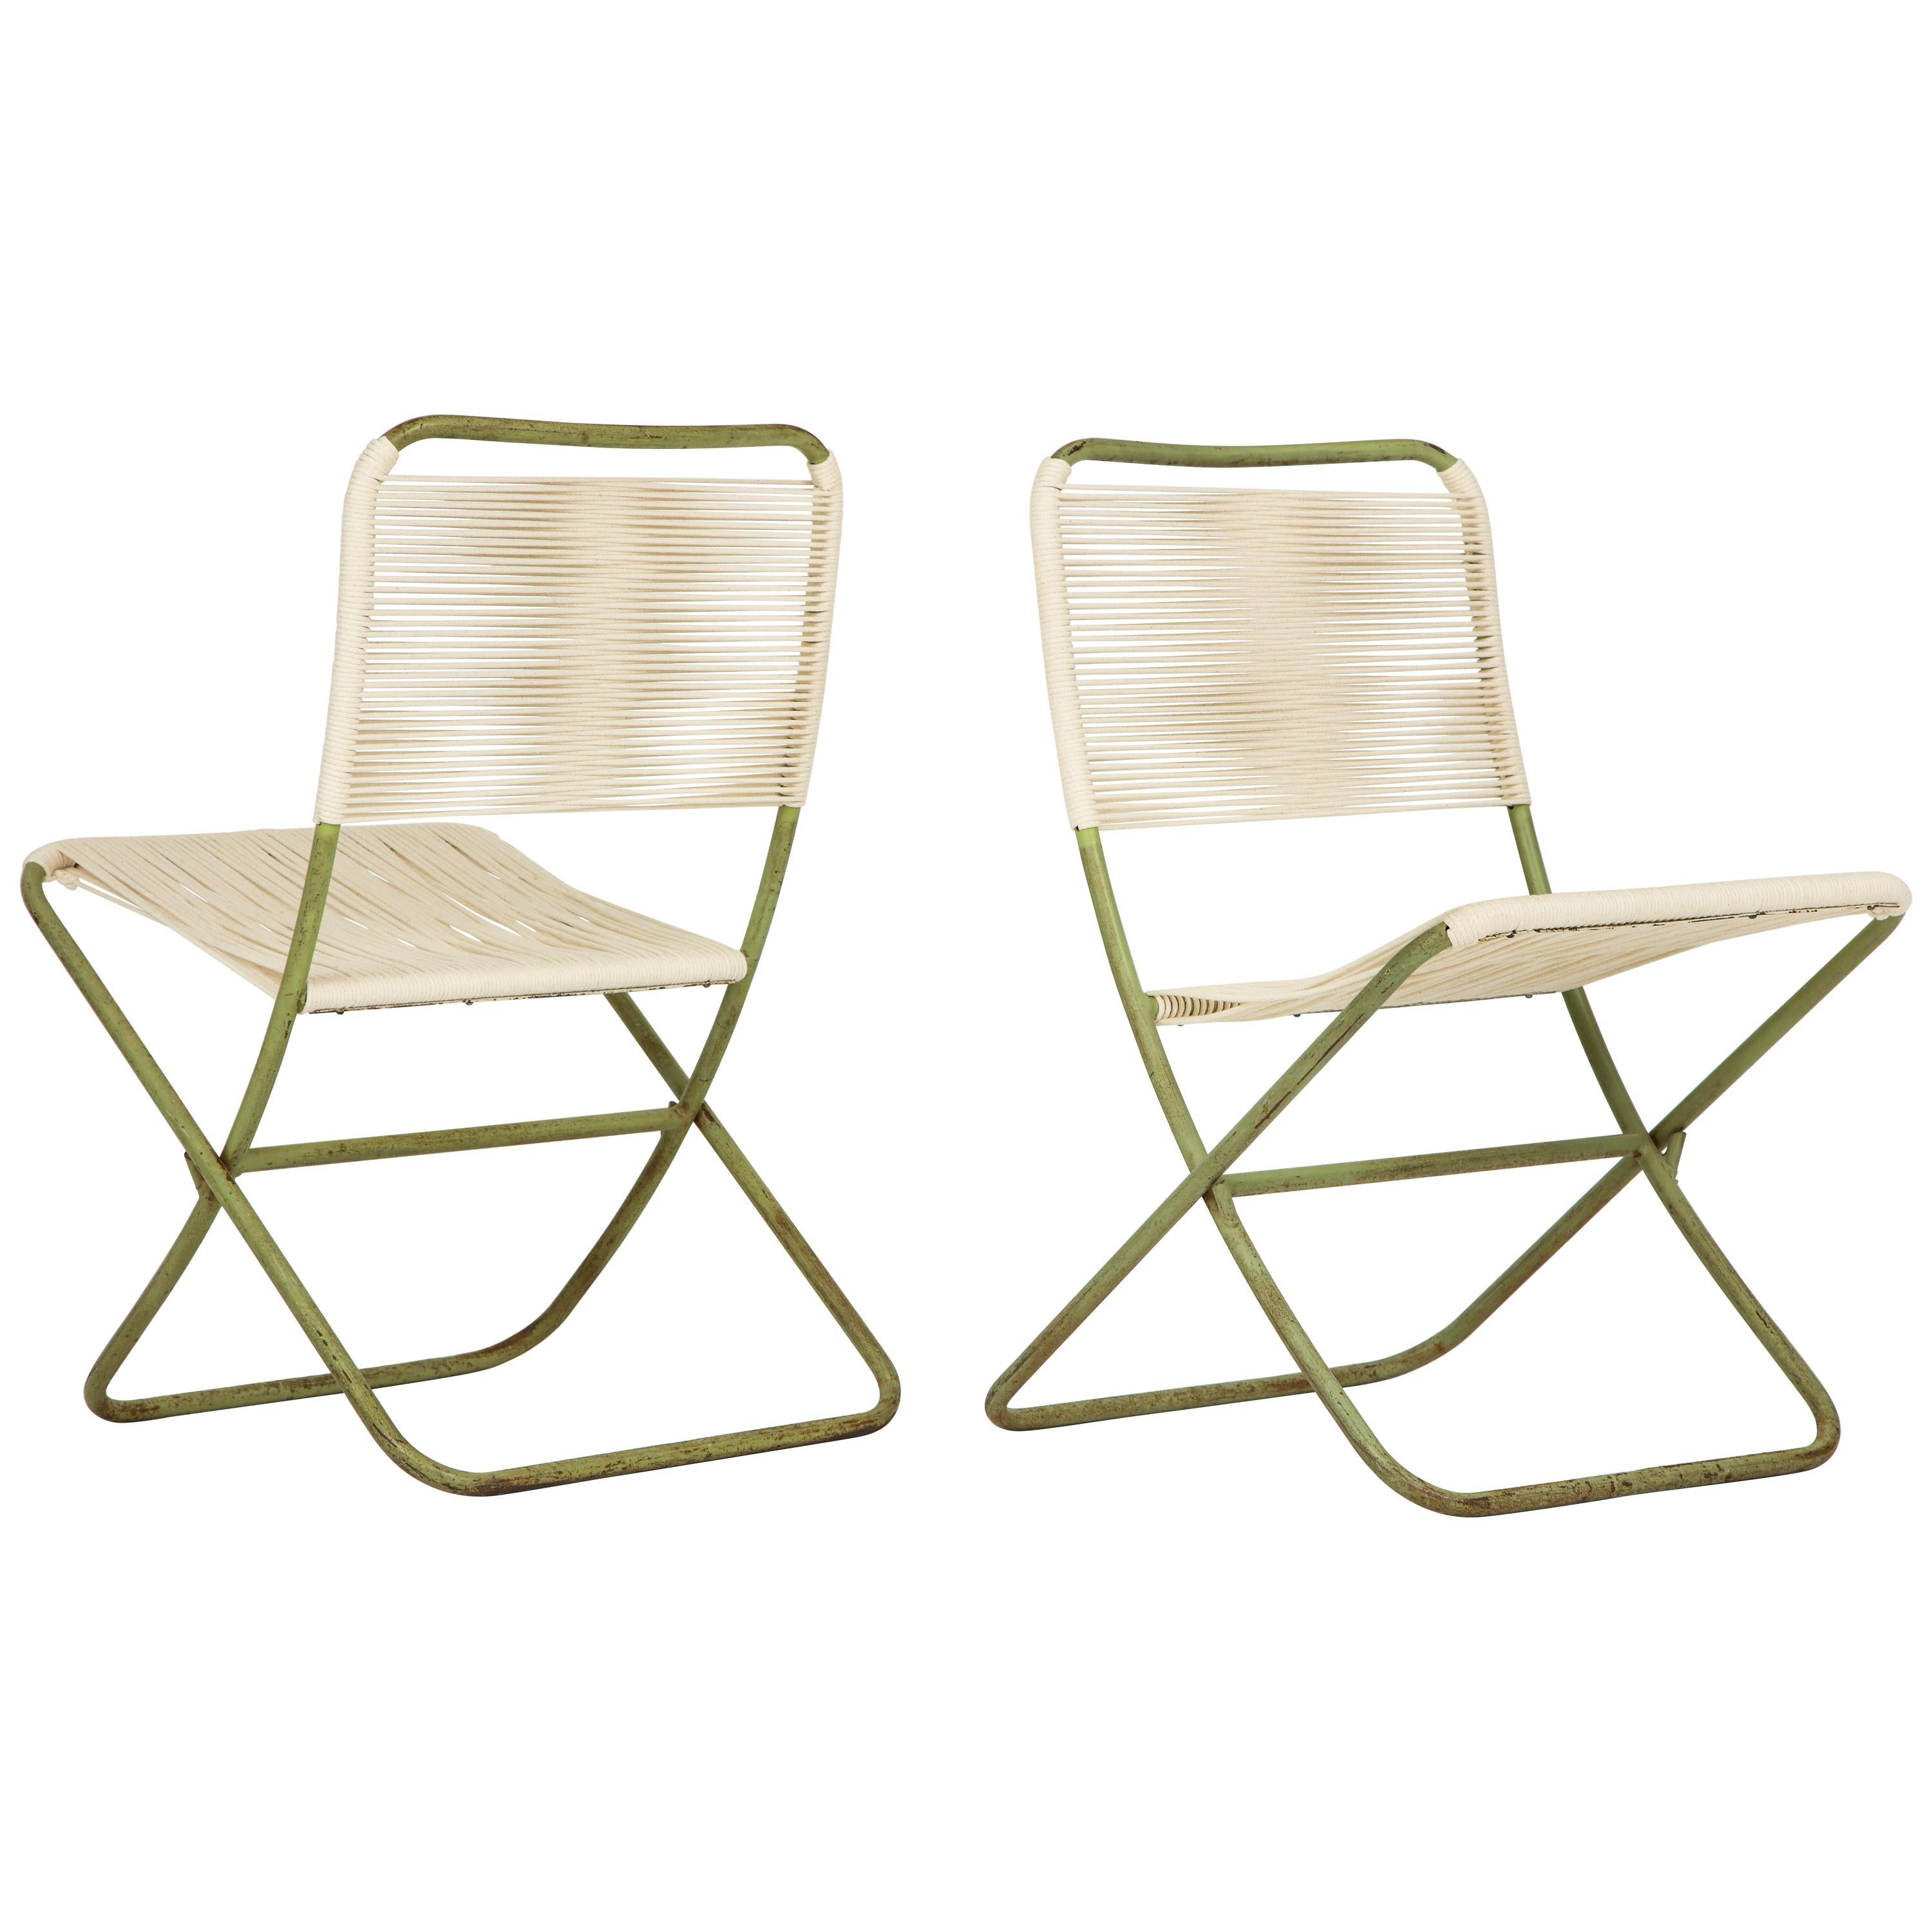 folding chairs for sale swivel tub exceedingly rare greta grossman at 1stdibs